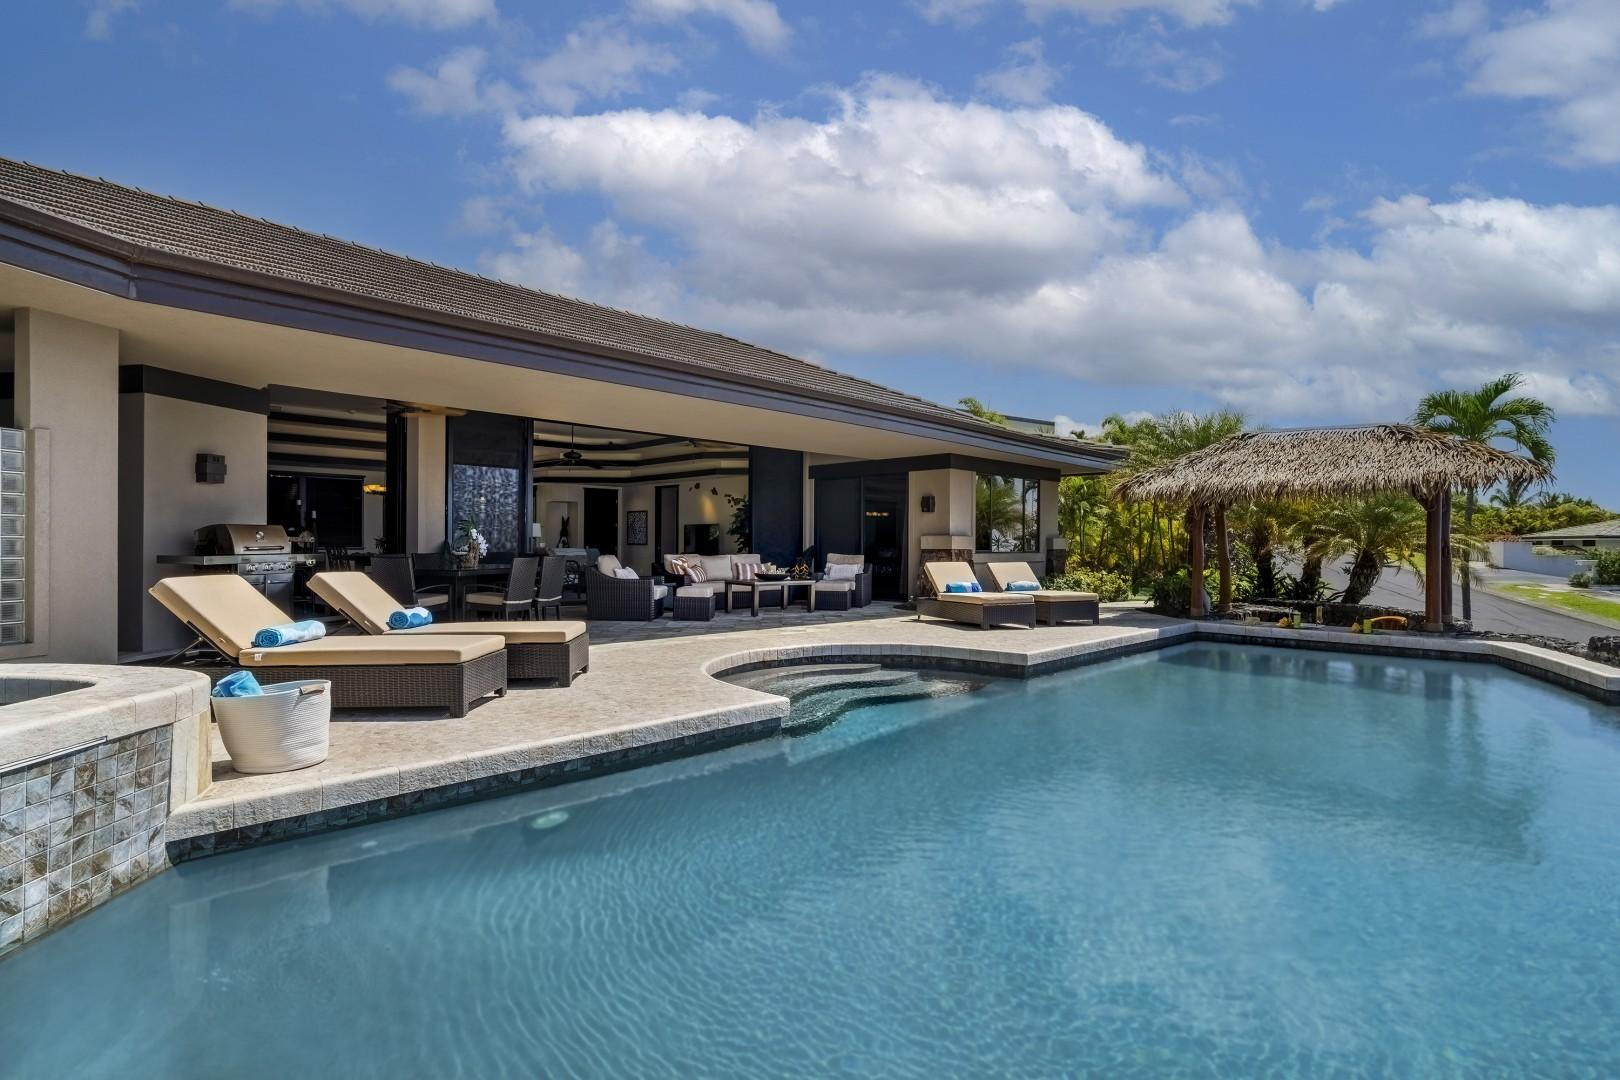 Beautiful infinity edge pool offers easy entry with steps leading in!